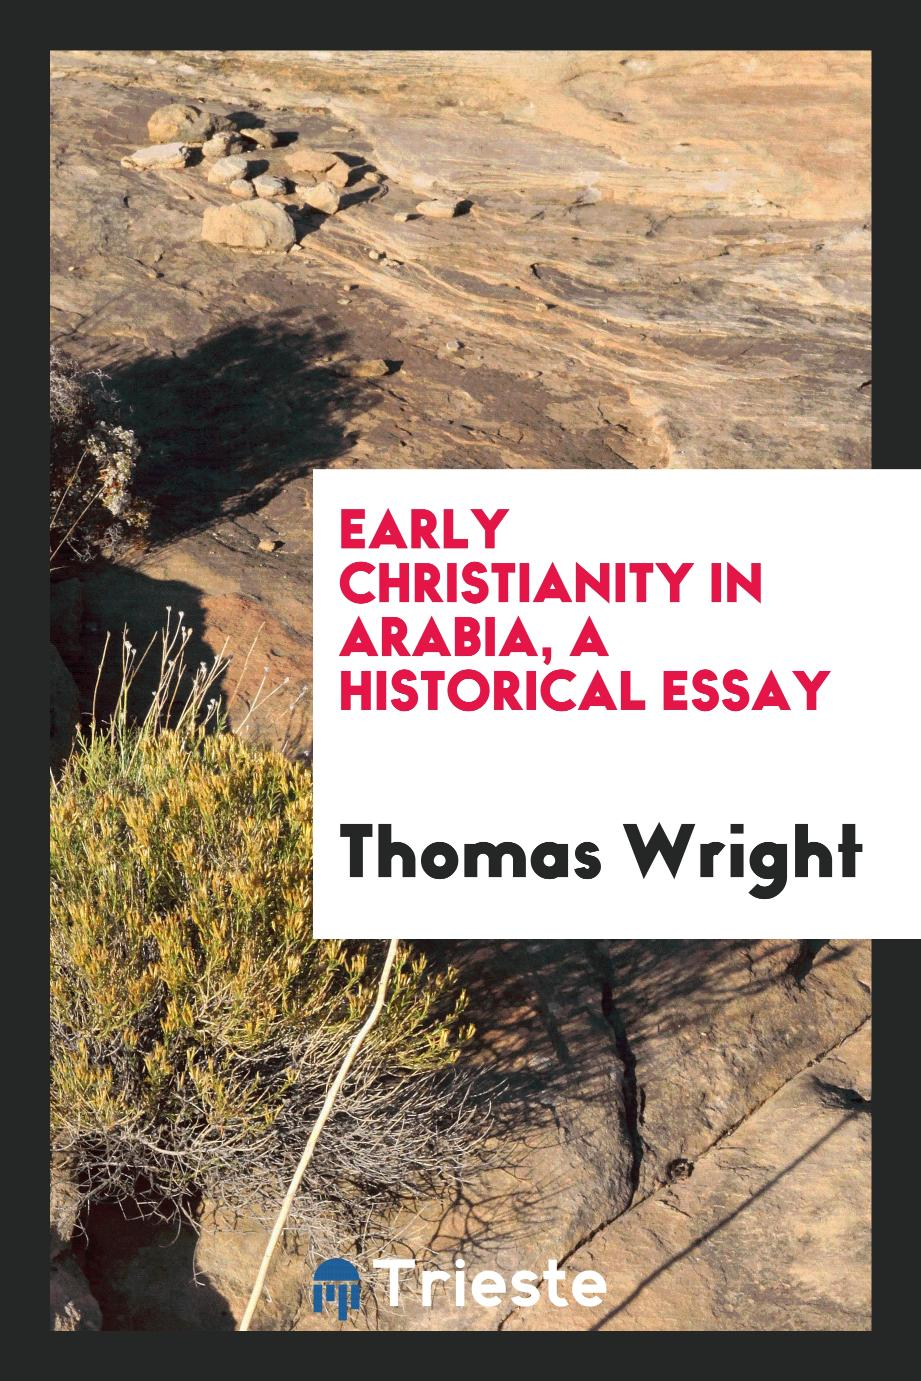 Early Christianity in Arabia, a historical essay